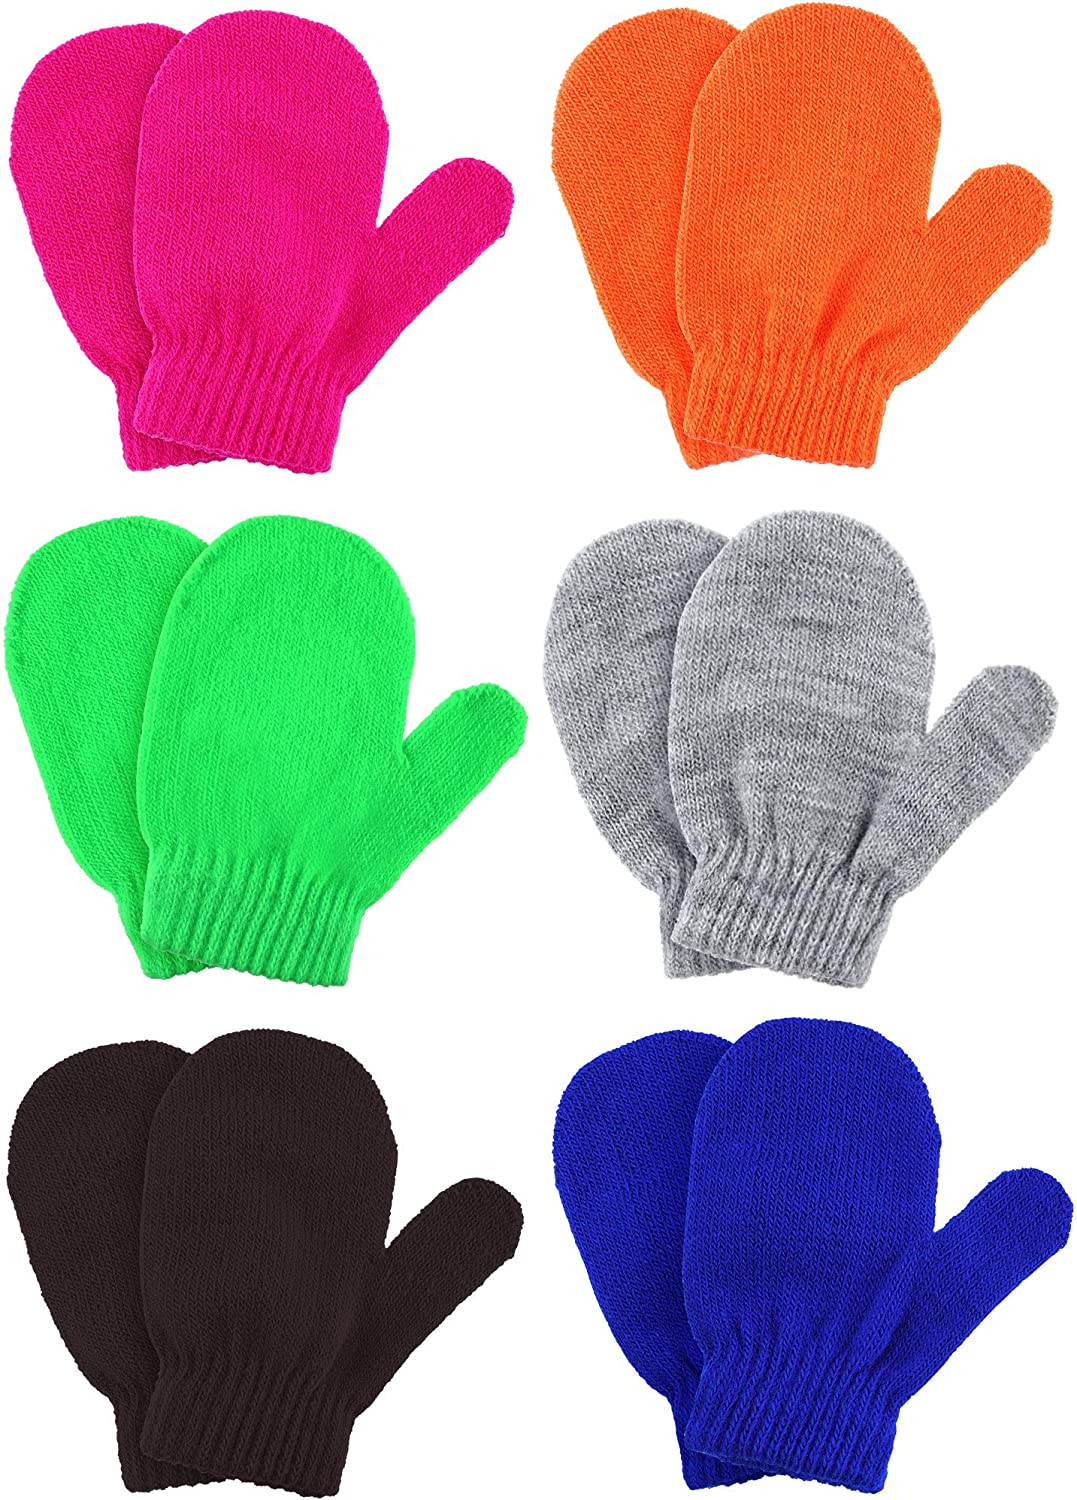 Boao 6 Pairs Winter Warm Knitted Mittens Gloves Stretch Mittens for Christmas Party Kids Toddler Supplies